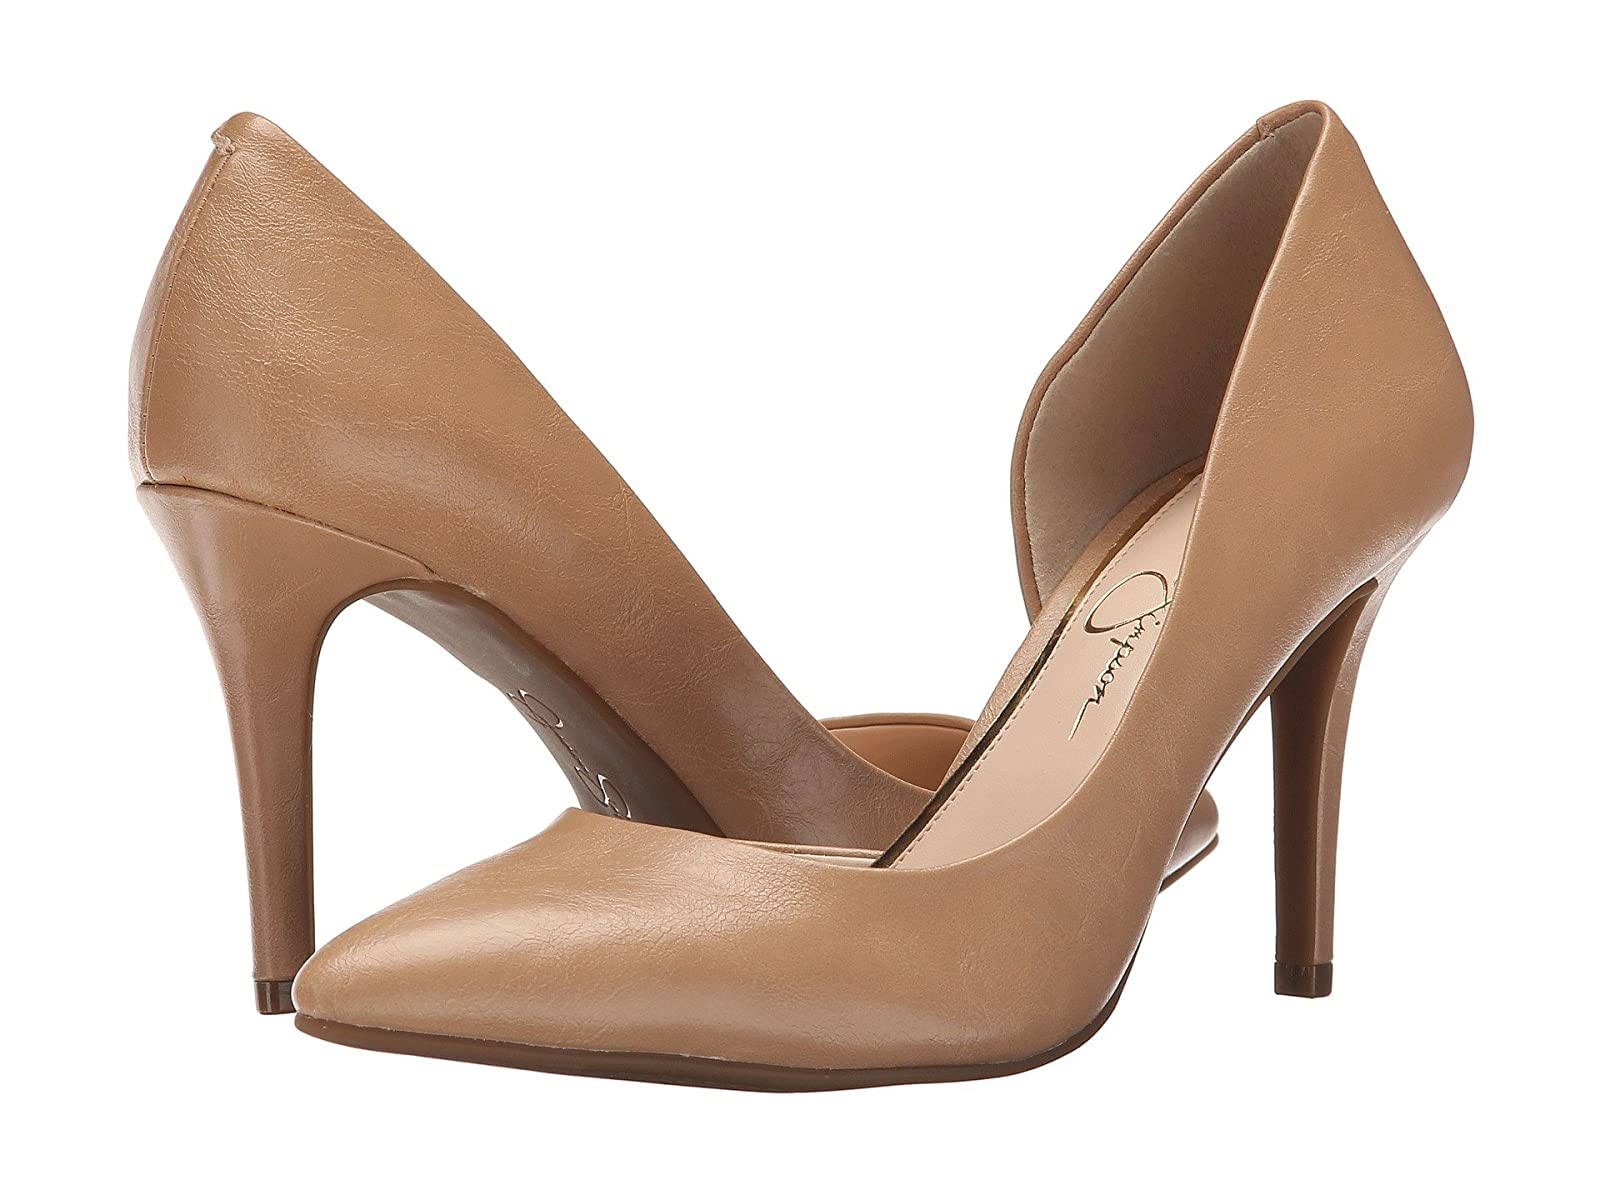 Jessica Simpson LacewellCheap and distinctive eye-catching shoes